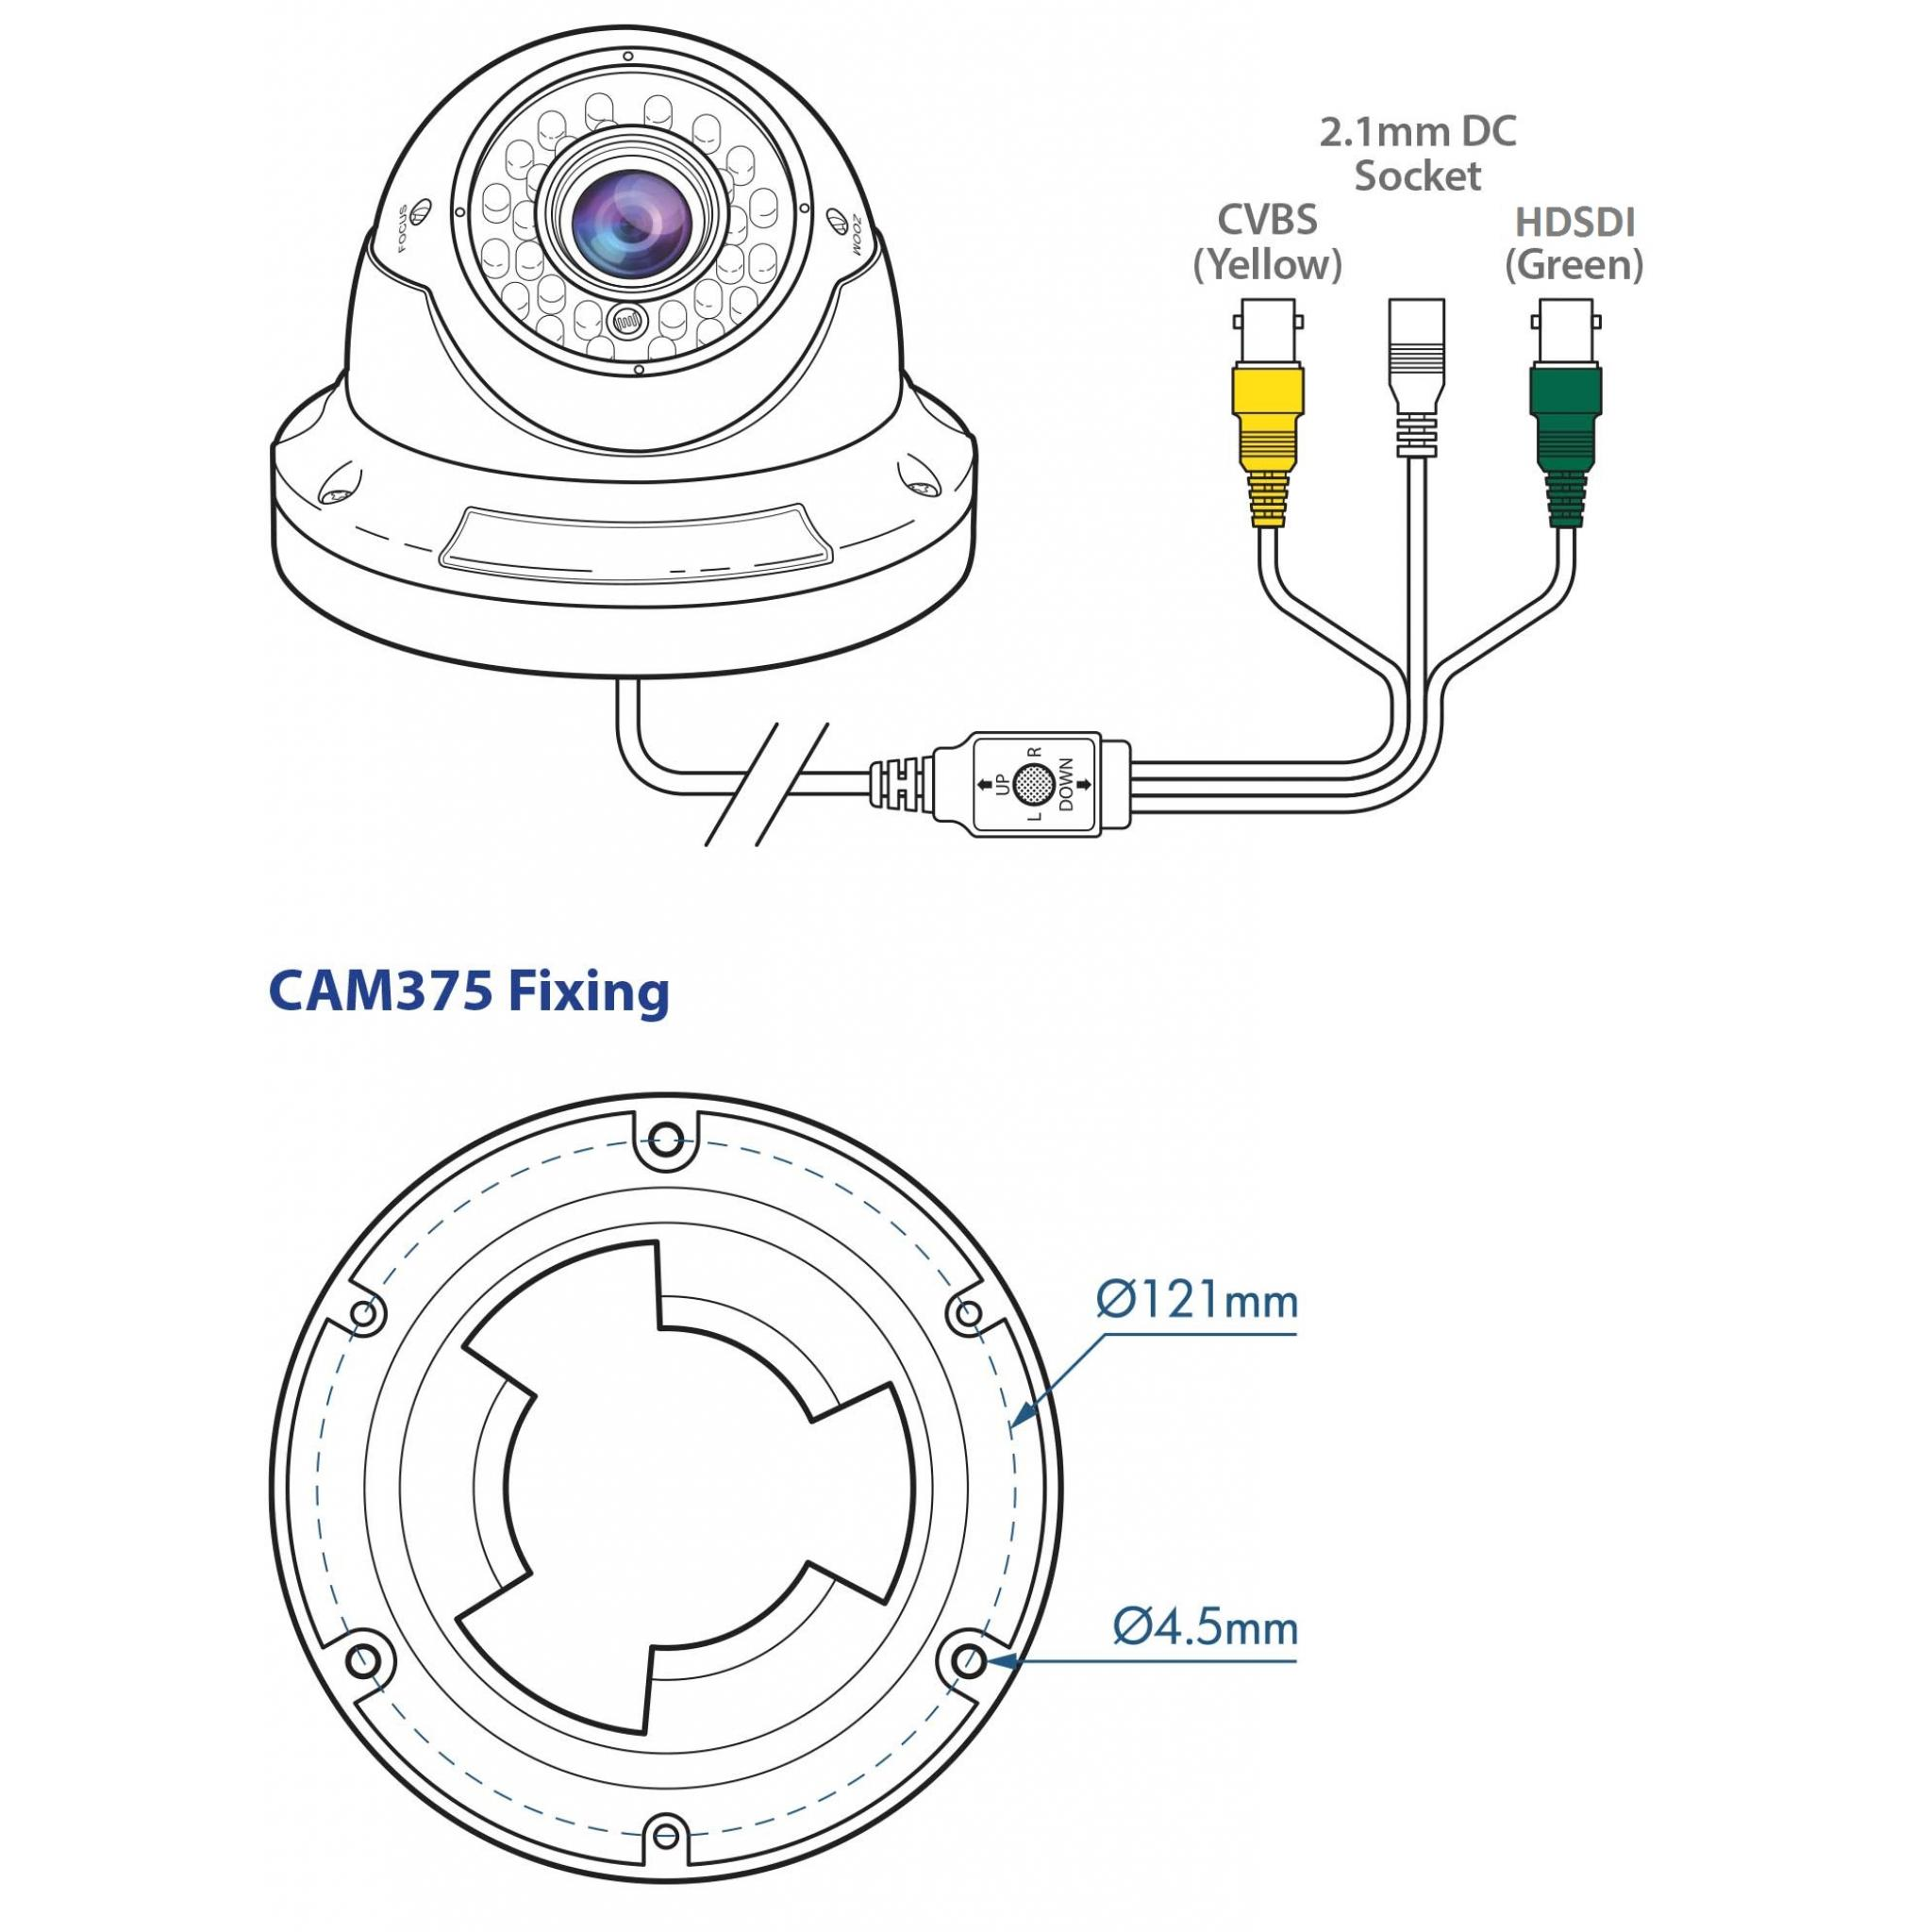 Control4 Dimmer Diagram Wiring For Professional Control 4 System Comcast Lighting